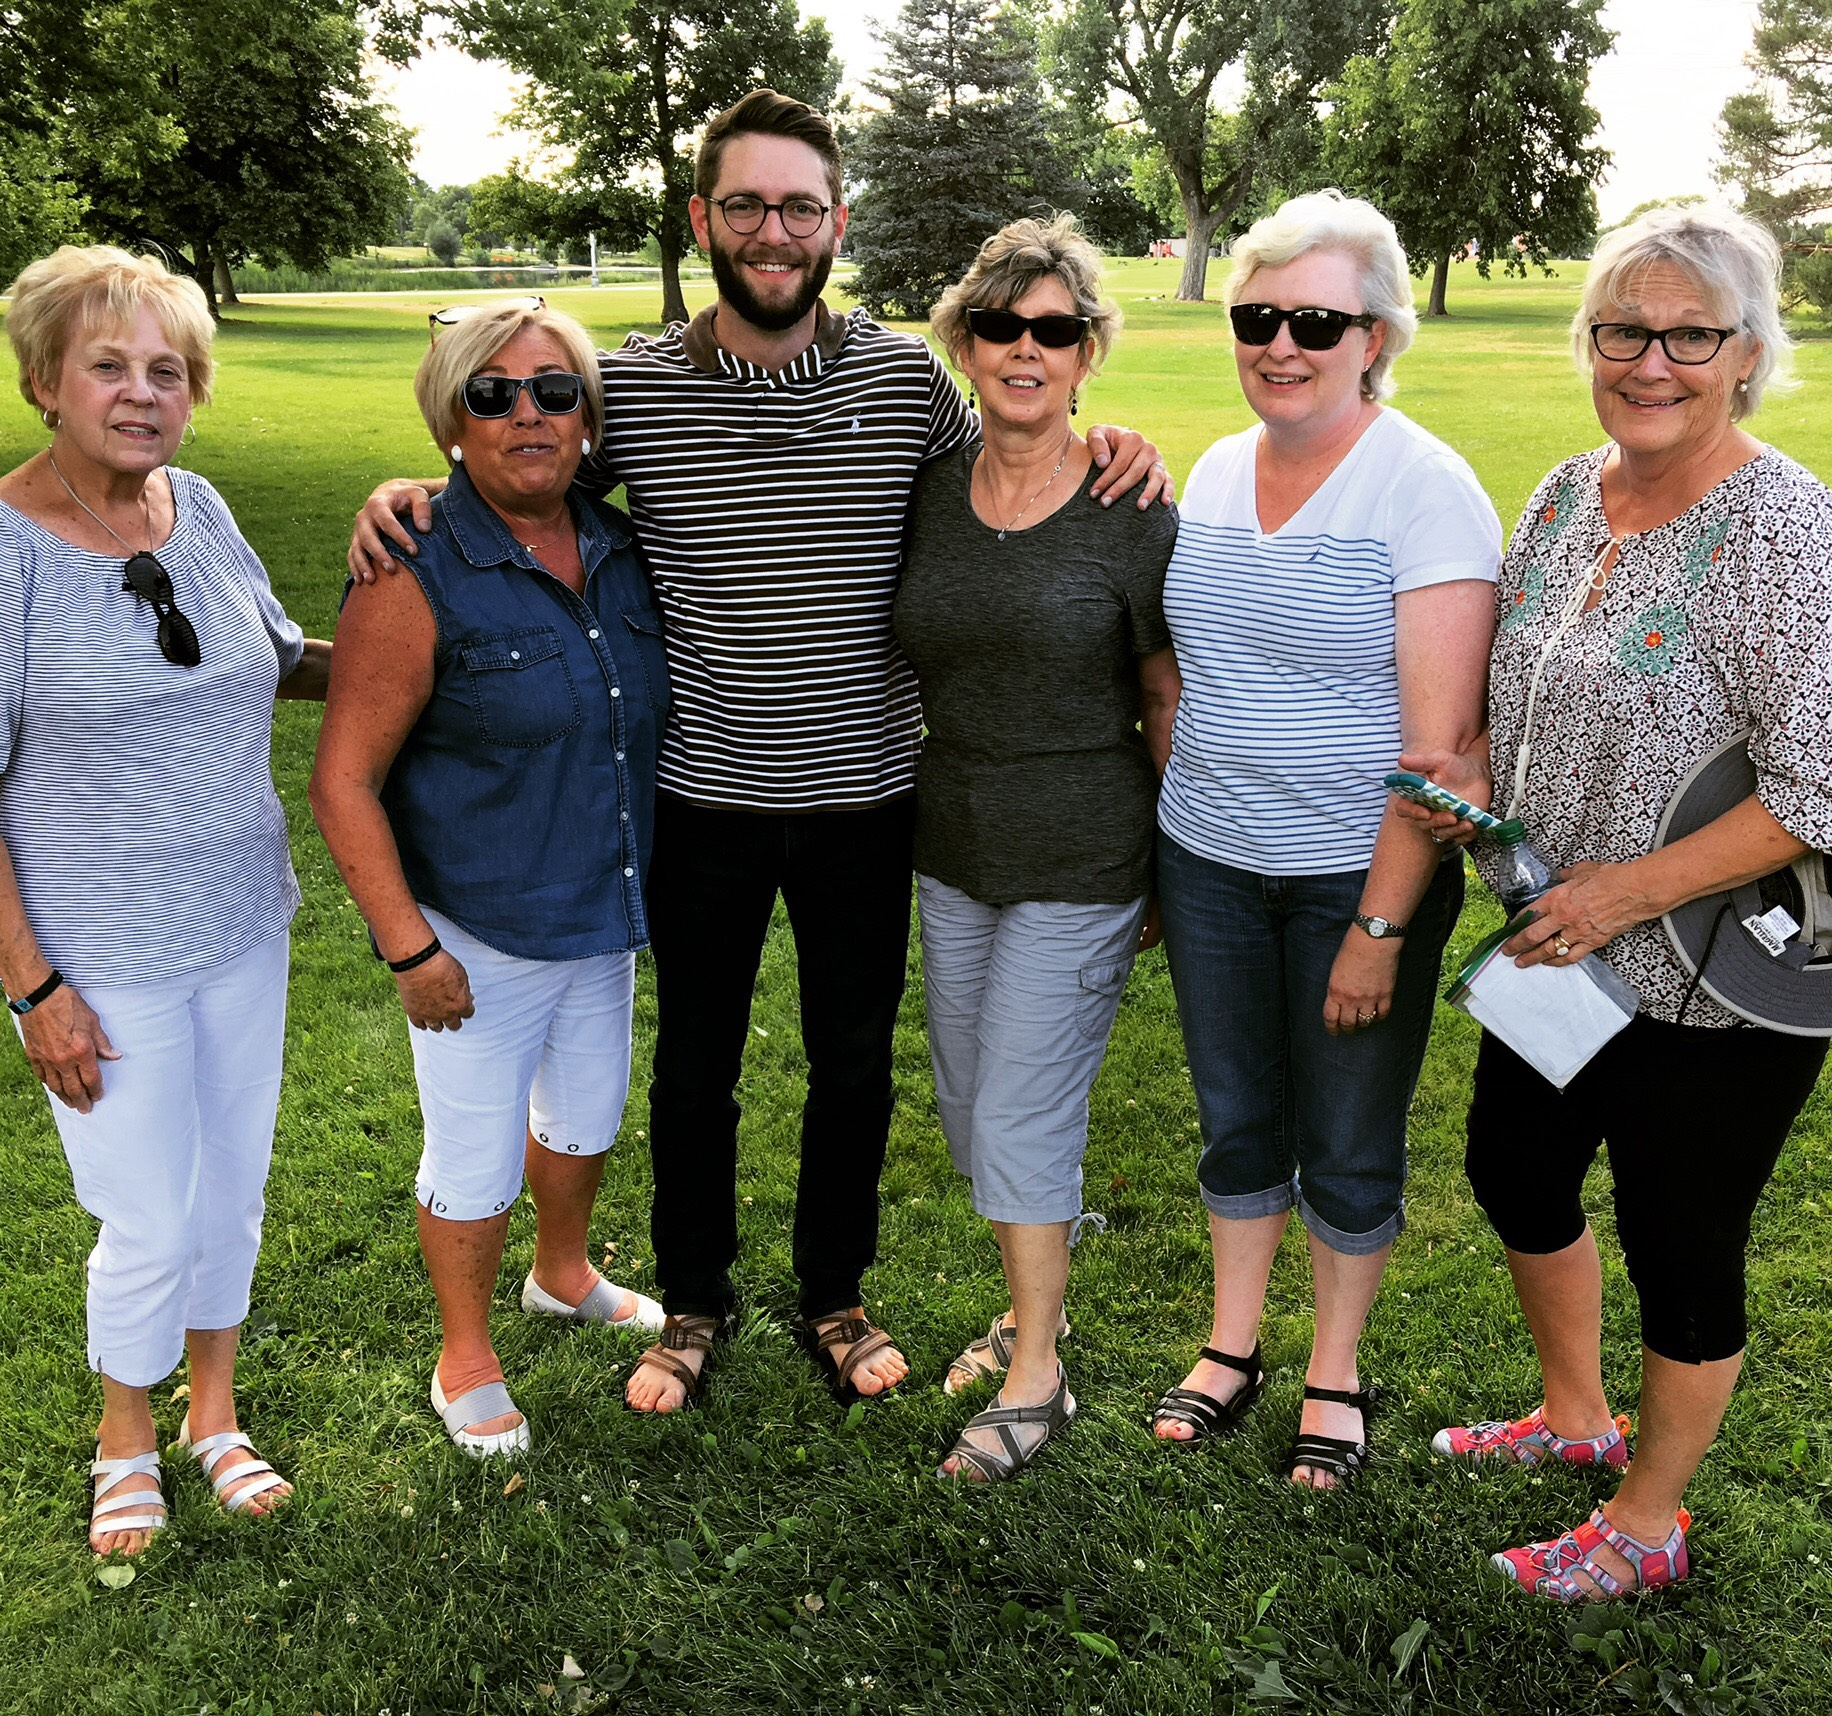 A WMU Team (Women's Mission Union of the Southern Baptist Convention) who prayer walked Garland Park